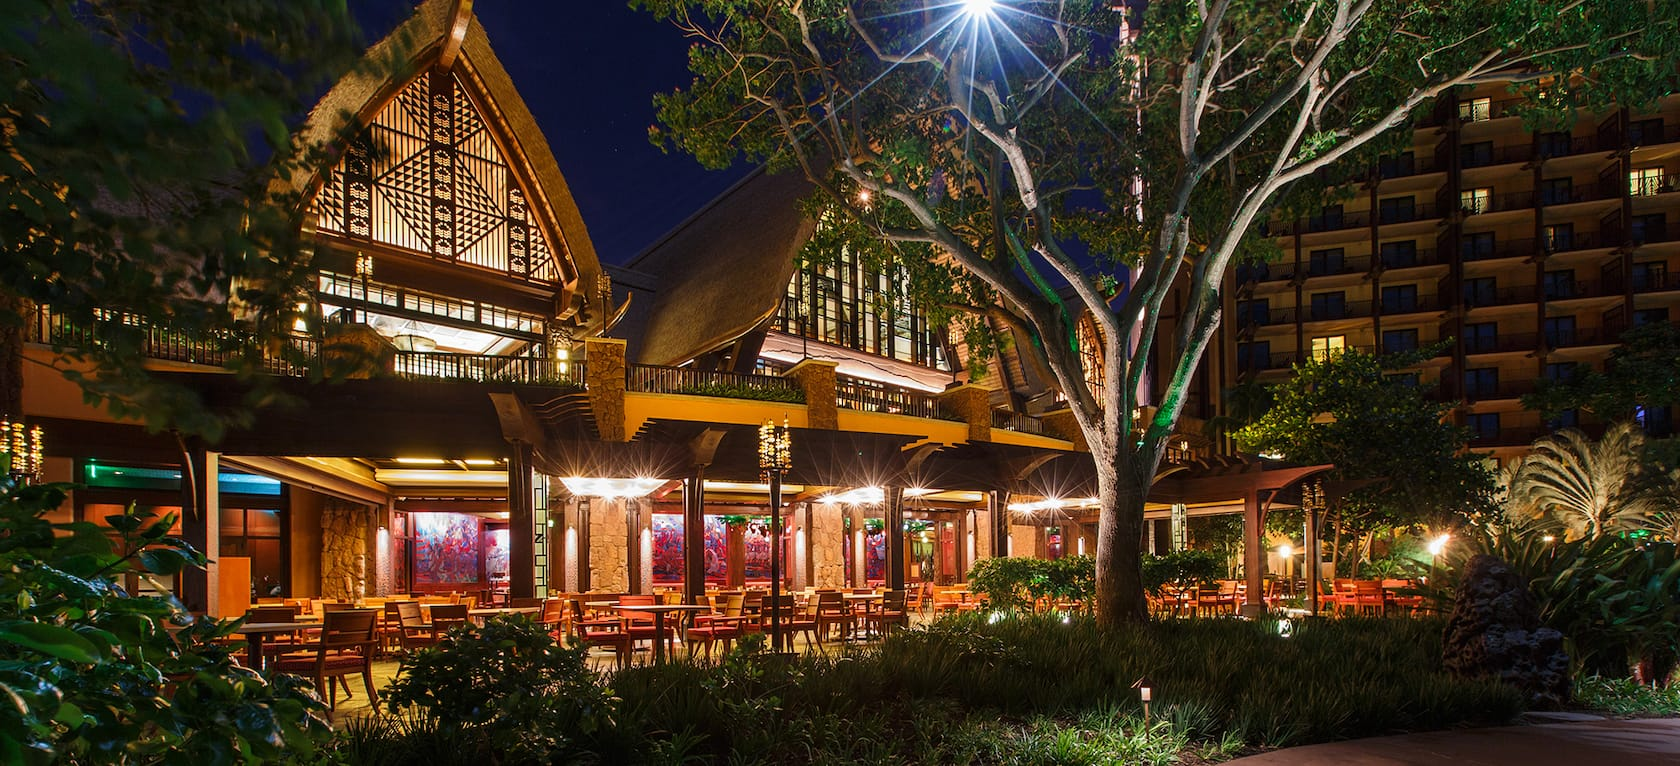 The exterior of Makahiki at night, with a lit-up covered patio and twin peaked roofs with native designs